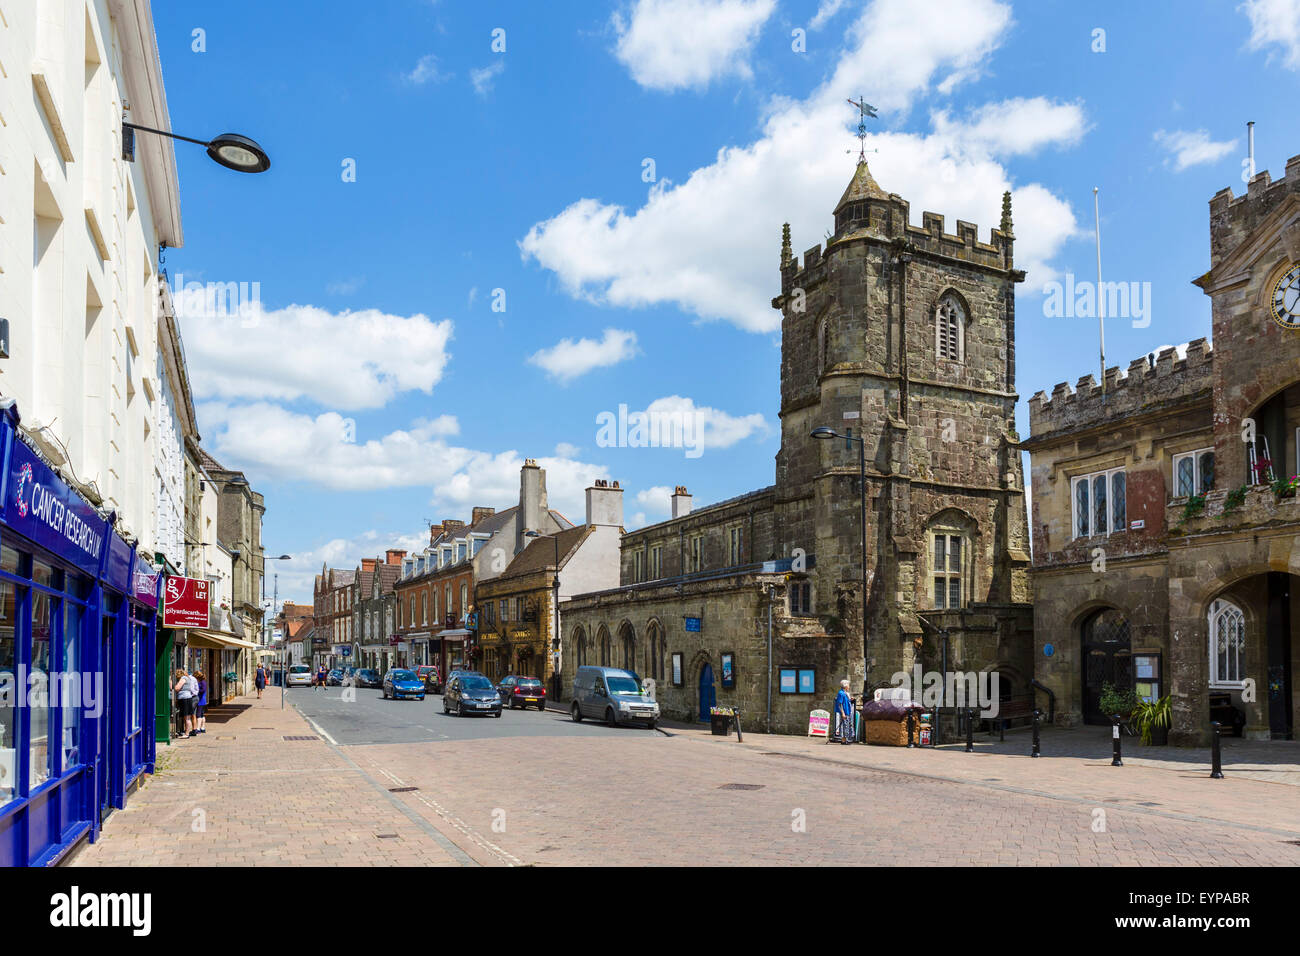 The High Street with Saint Peter's Church and the Town Hall to the right, Shaftesbury, Dorset, England, UK - Stock Image